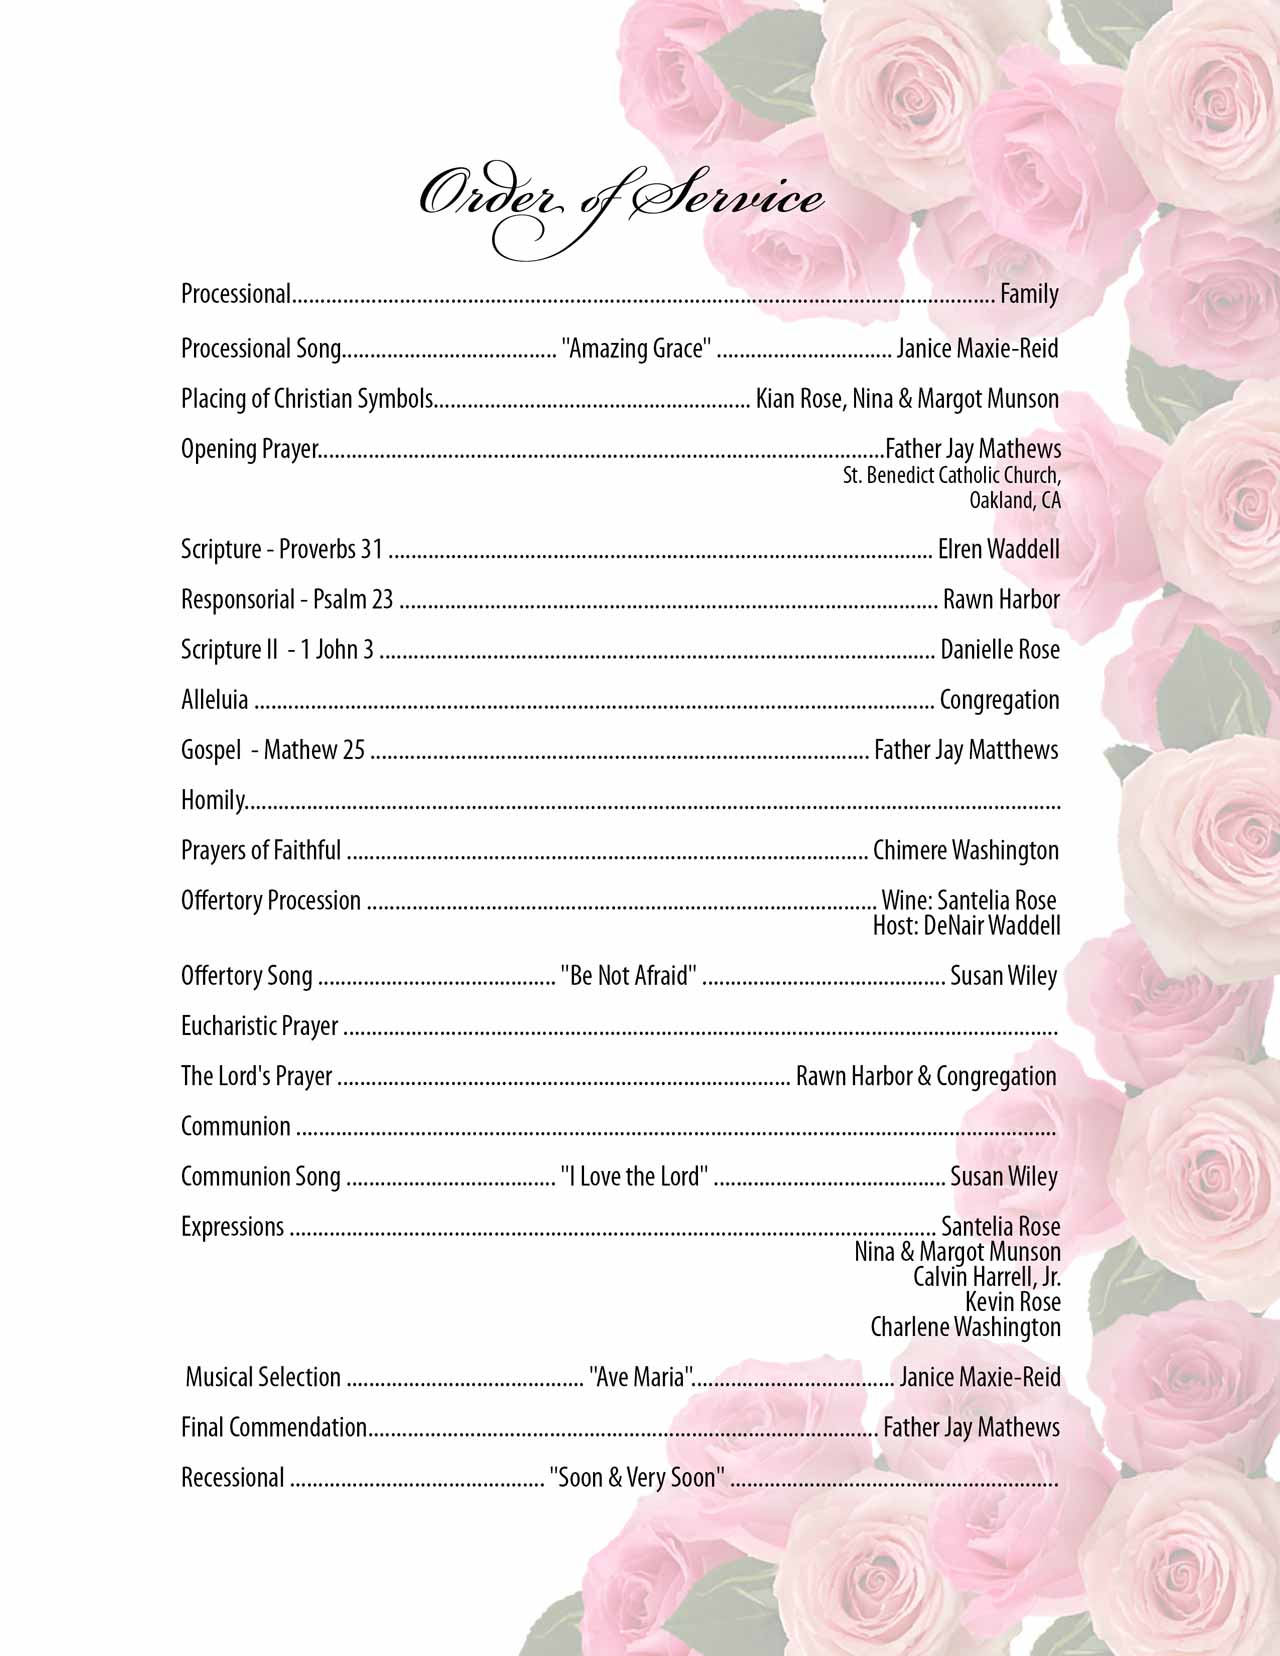 ORDER OF SERVICE -